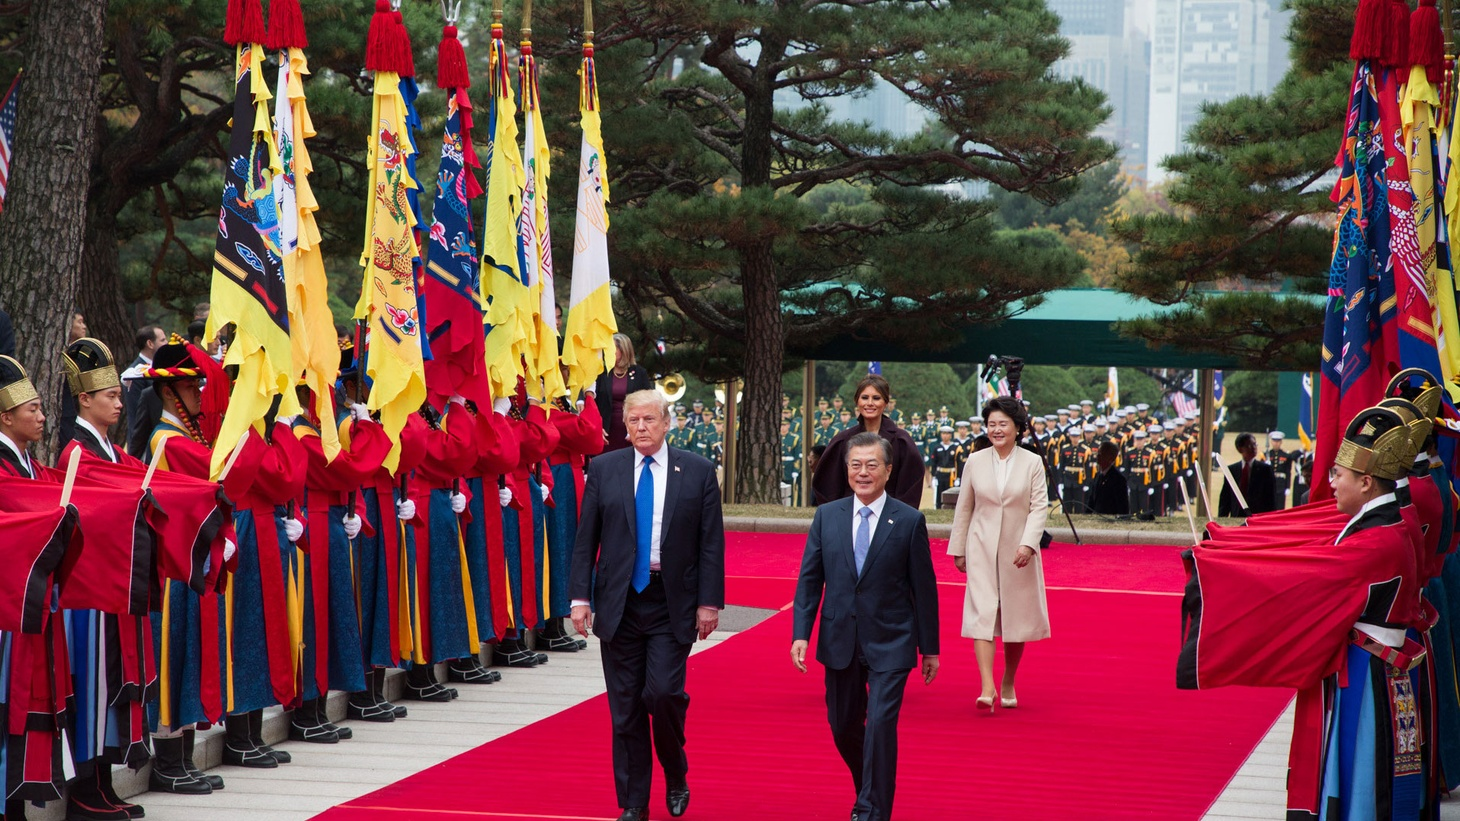 The president is on his way back from two weeks in Asia. No deals were inked. One reason for that: A lack of advance work by State Department diplomats. The department has been short staffed, and according to many experts, that's lead to a crisis for U.S. leadership in the world.